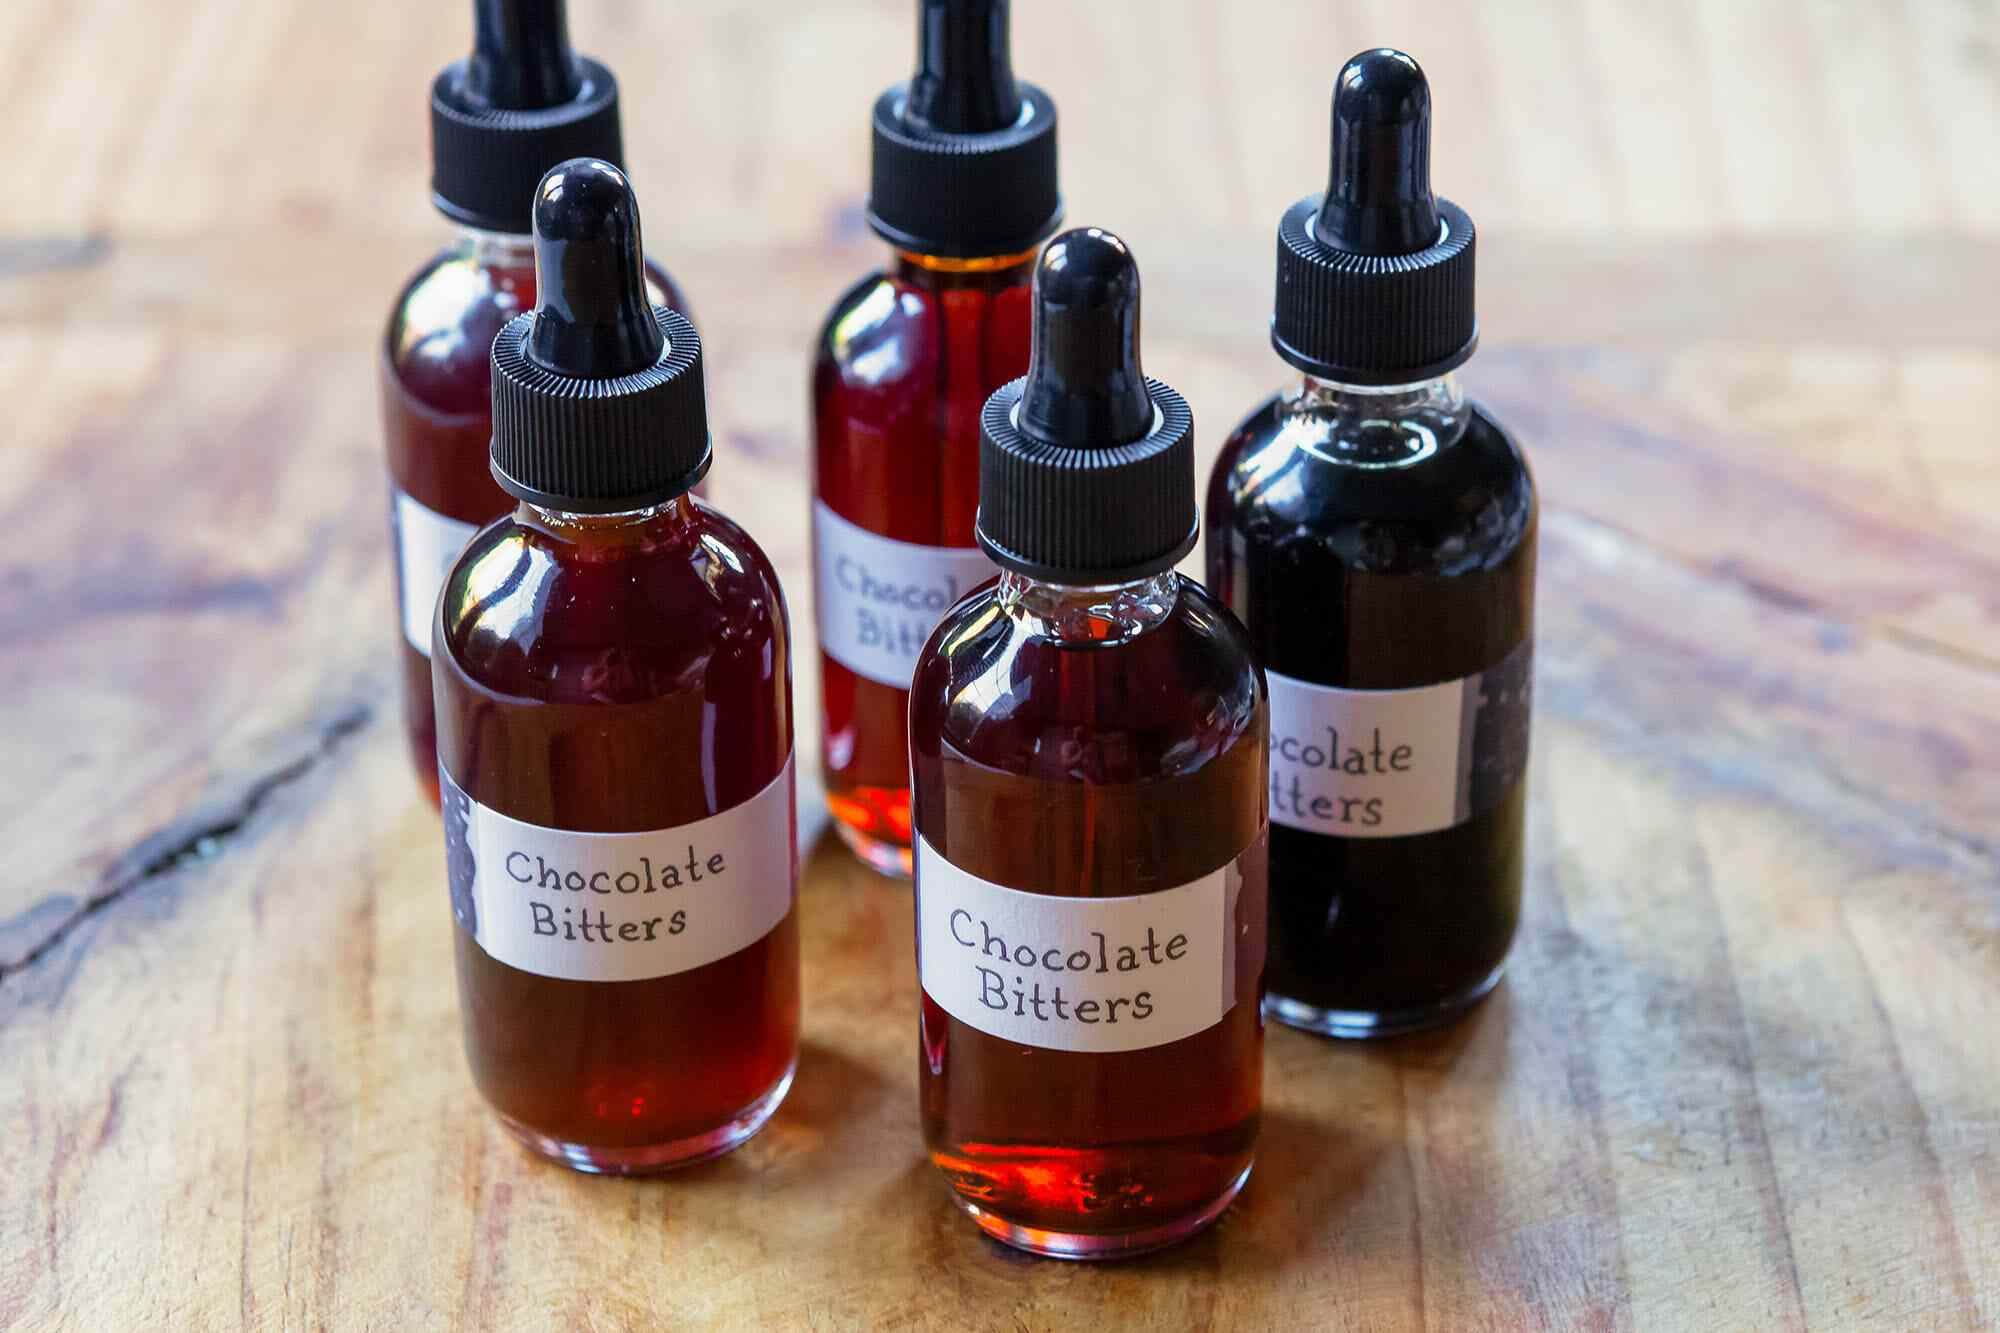 Homemade bitters in small dropper bottles.